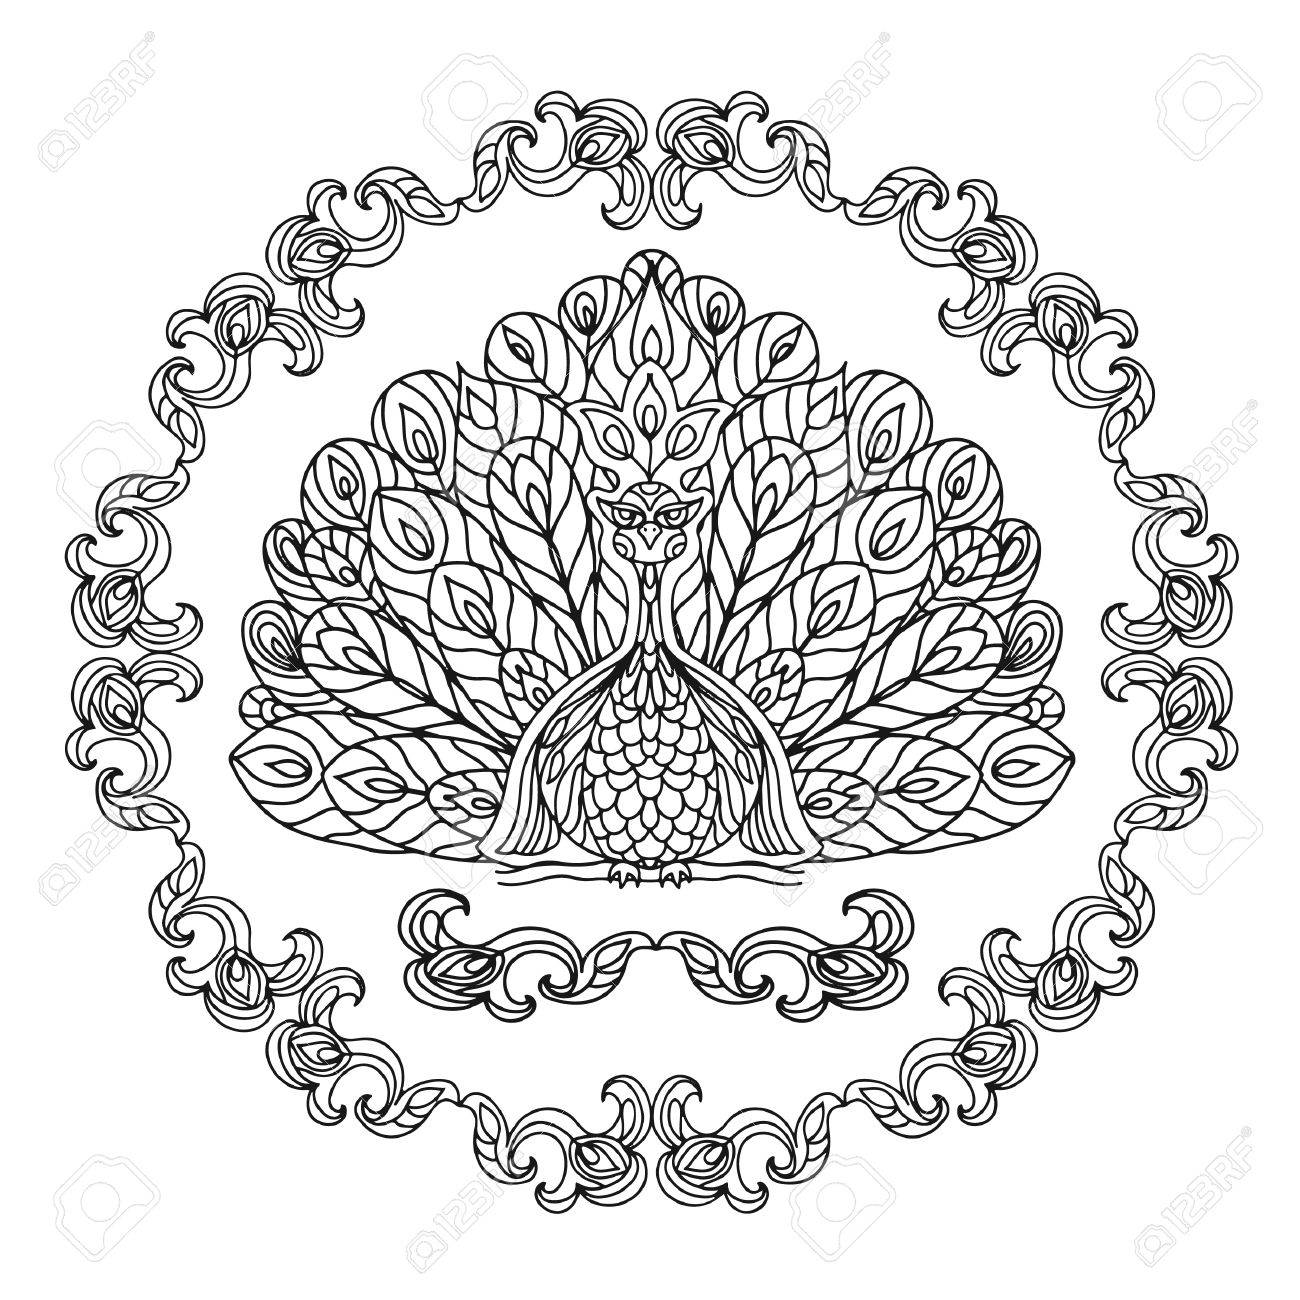 peacock coloring page royalty free cliparts vectors and stock